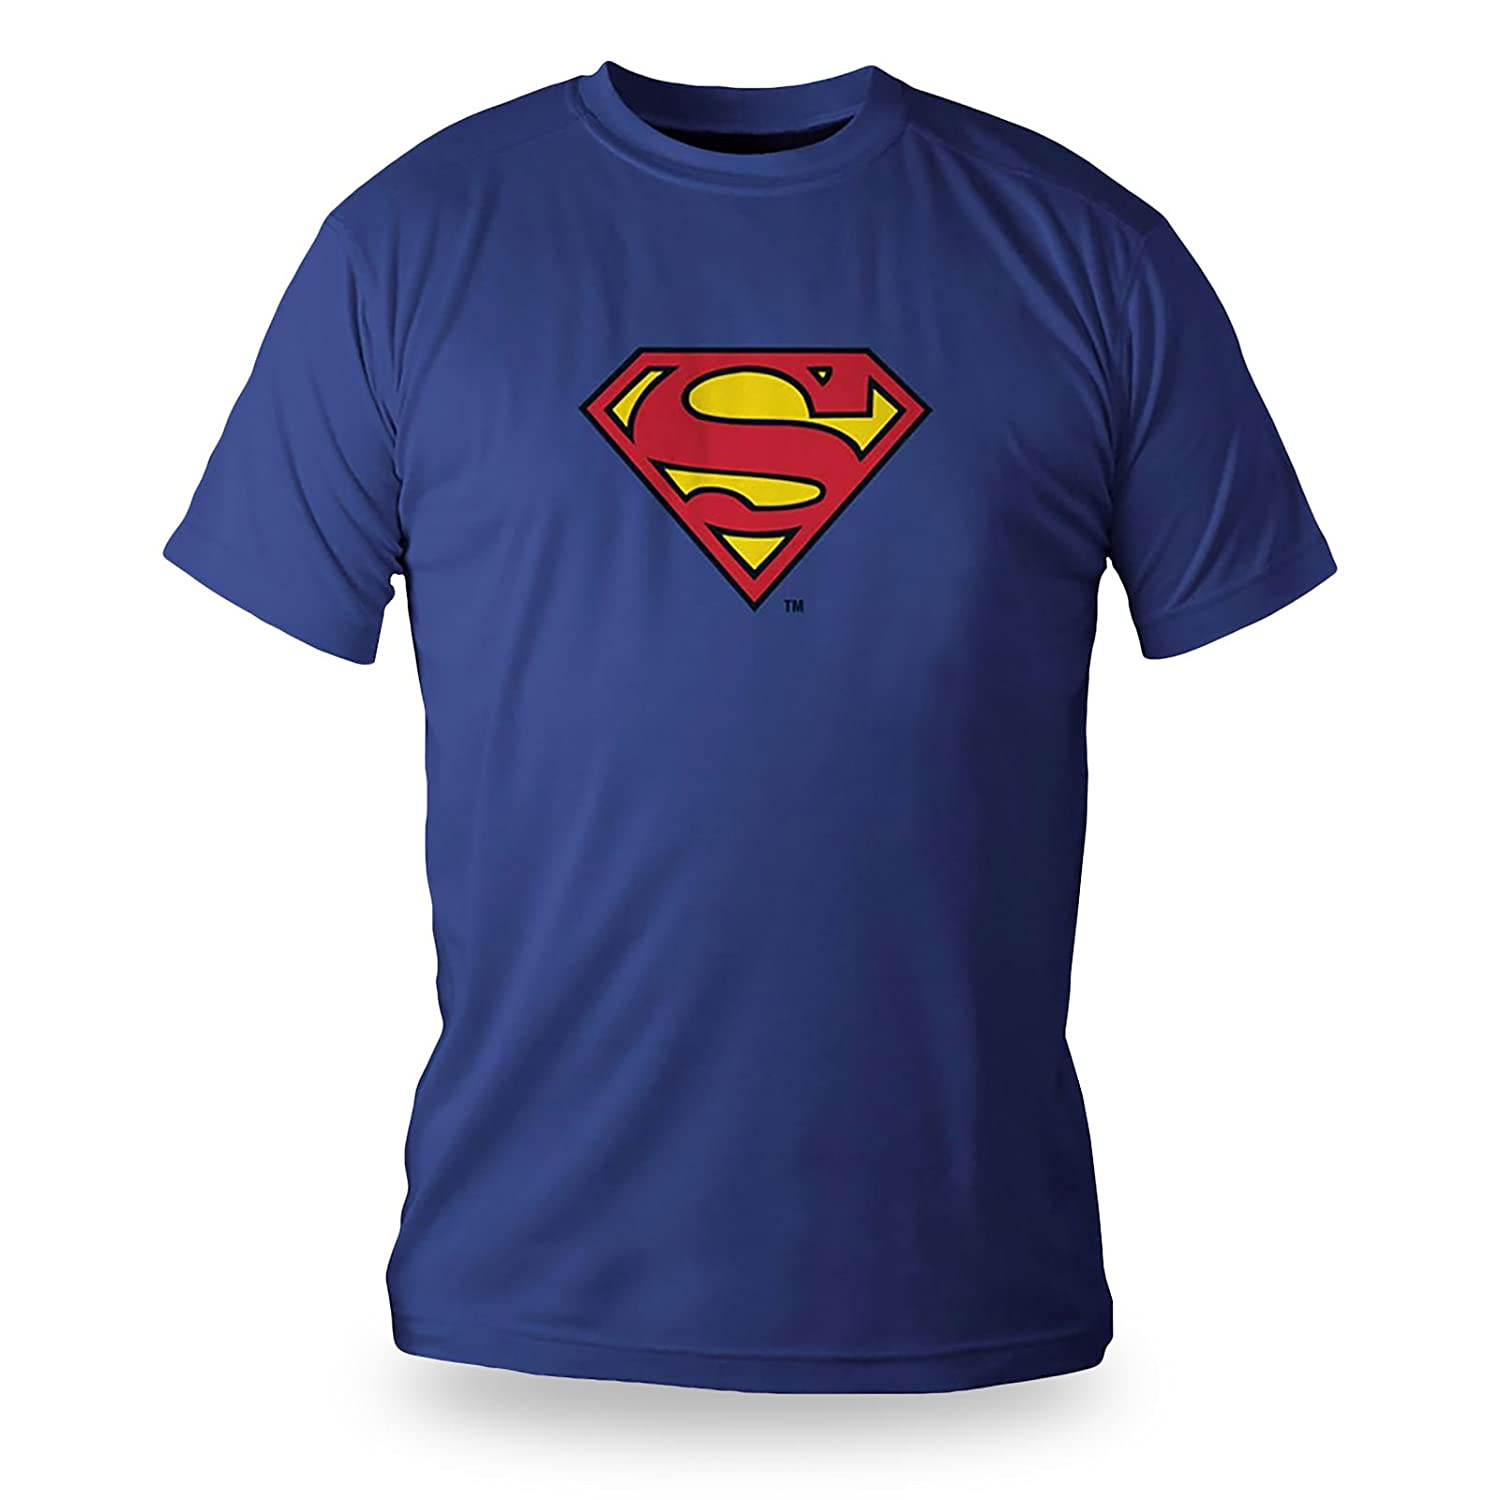 Superman DC Comics Superhero Logo Deluxe T-Shirt Cotton Blue in Metal Box